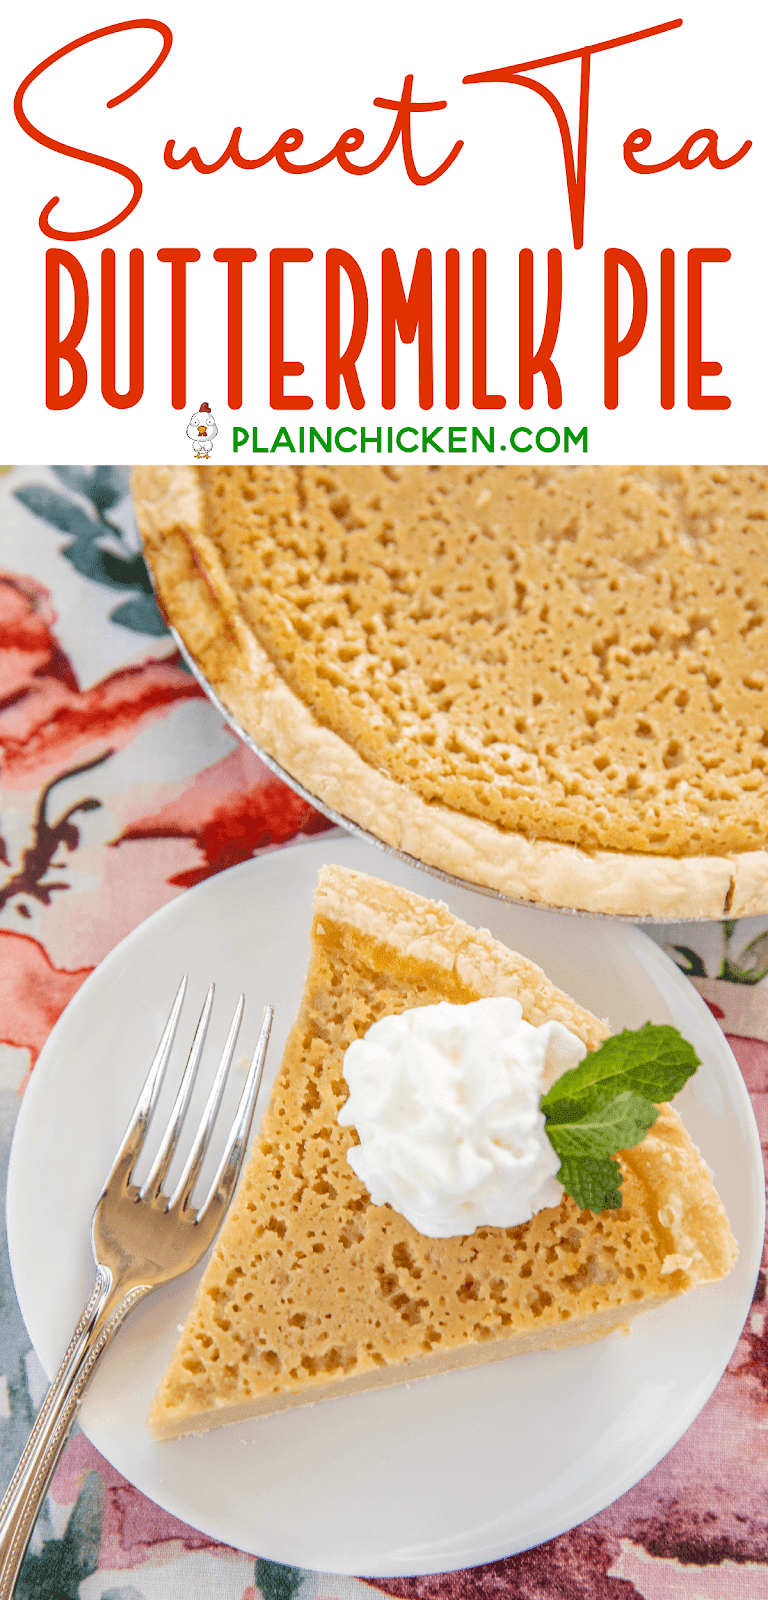 slice of pie topped with whipped cream and mint on a plate